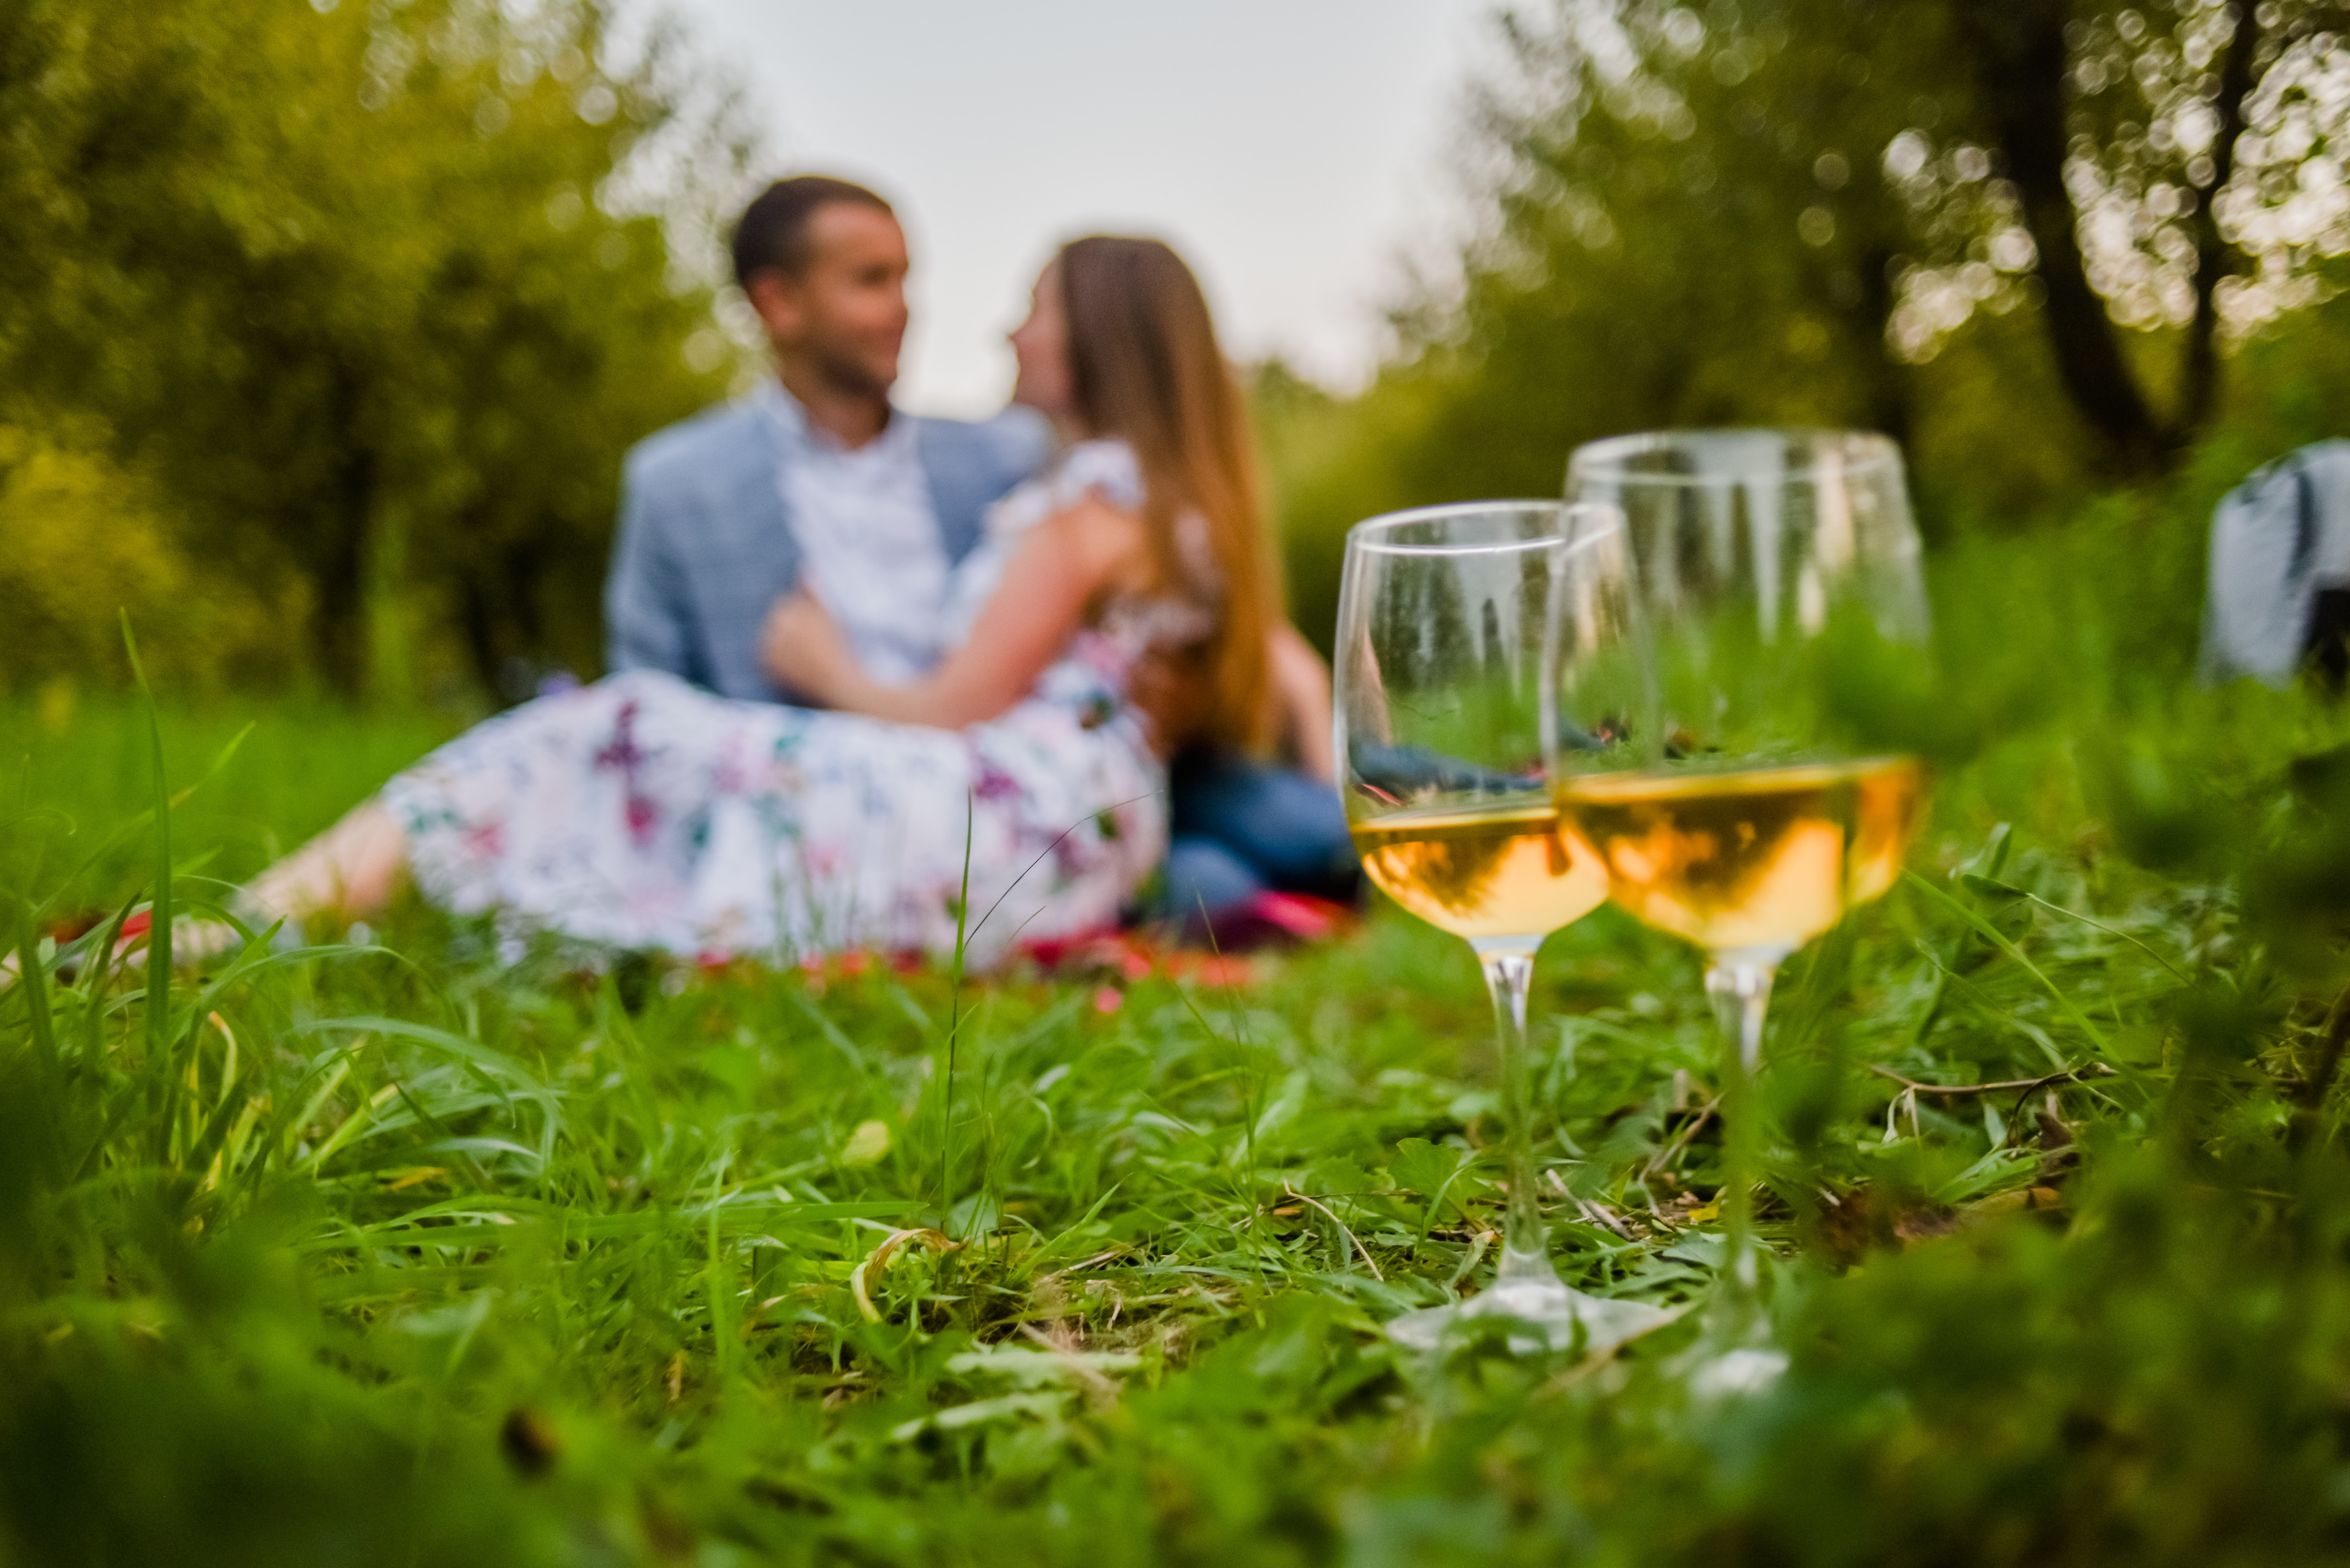 Visit Waipara Springs winery, grab a bike and have a picnic in the vines